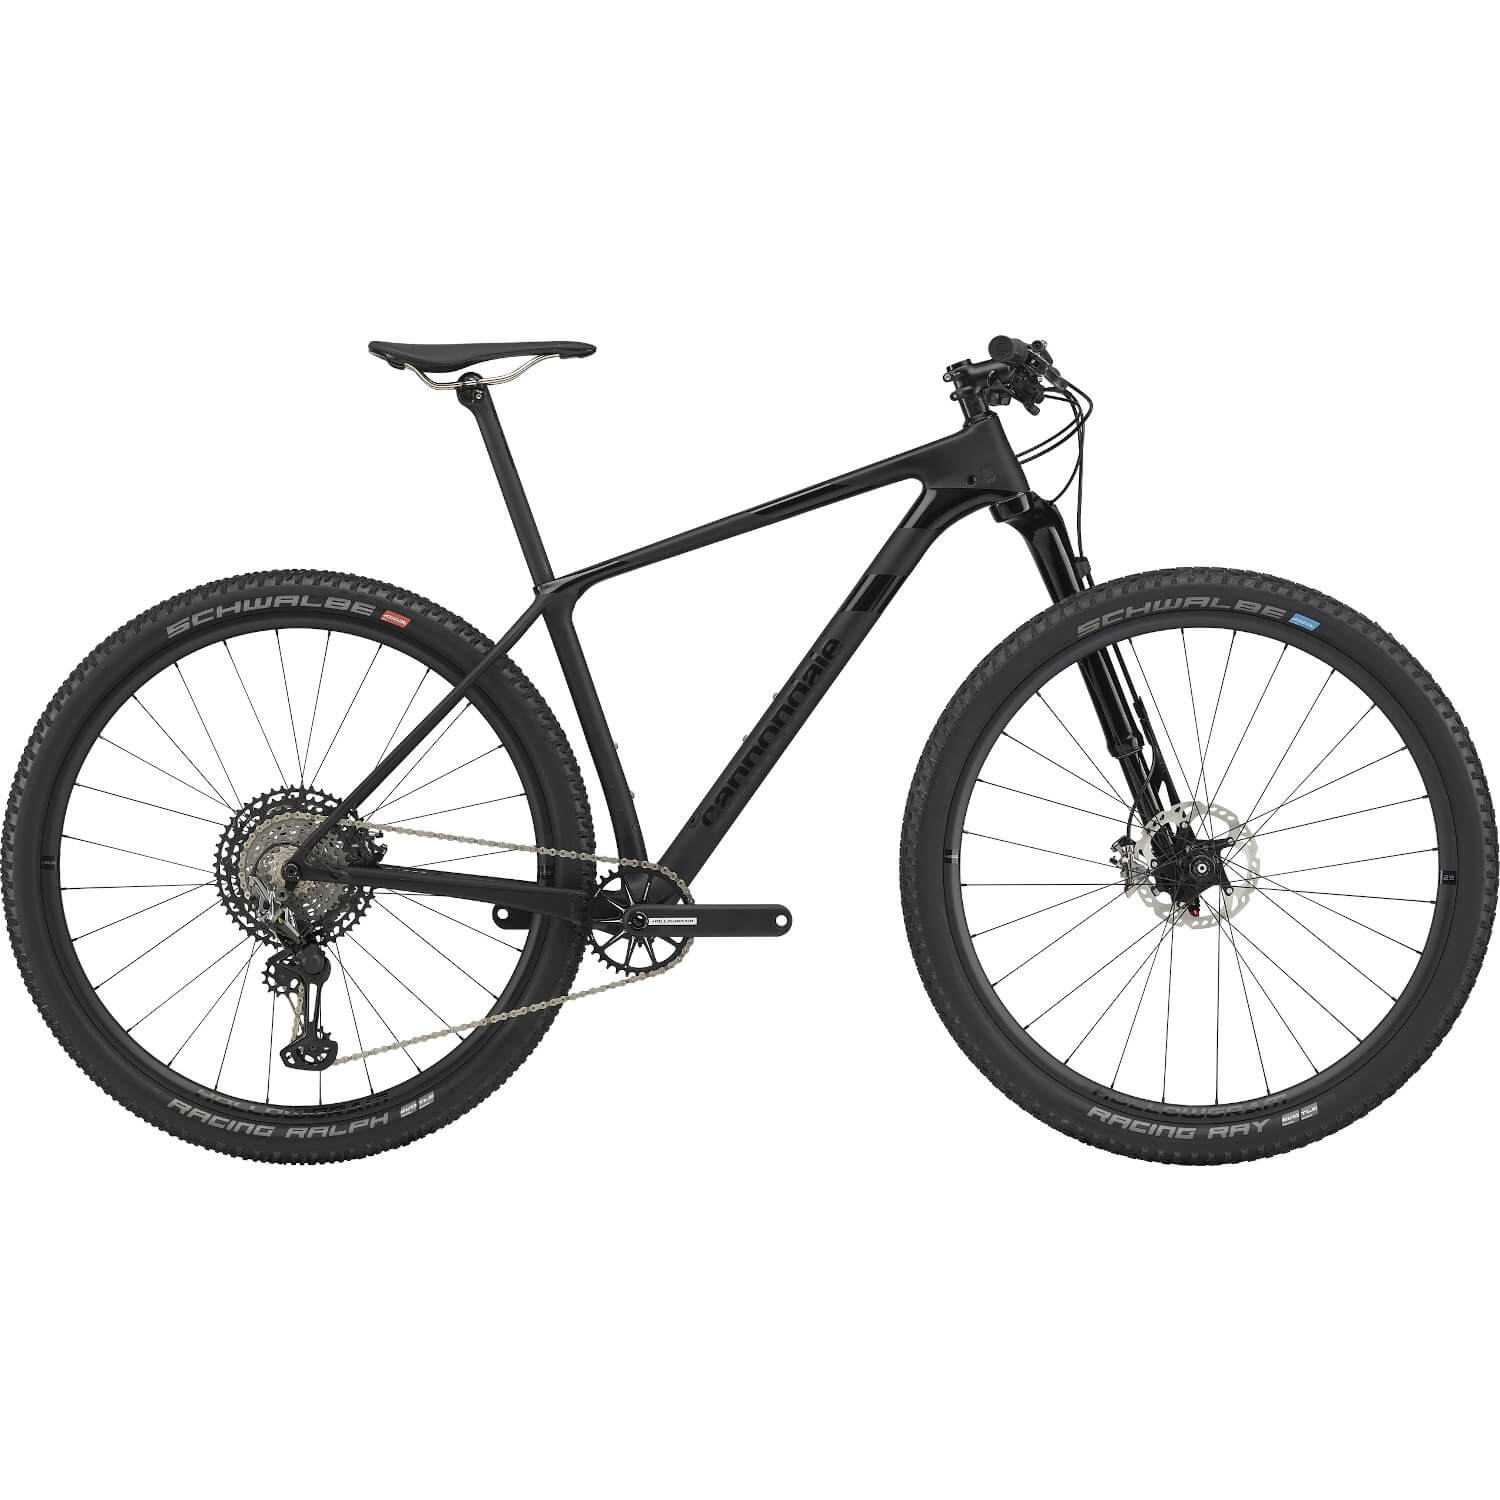 Trek vs Cannondale Mountain Bikes